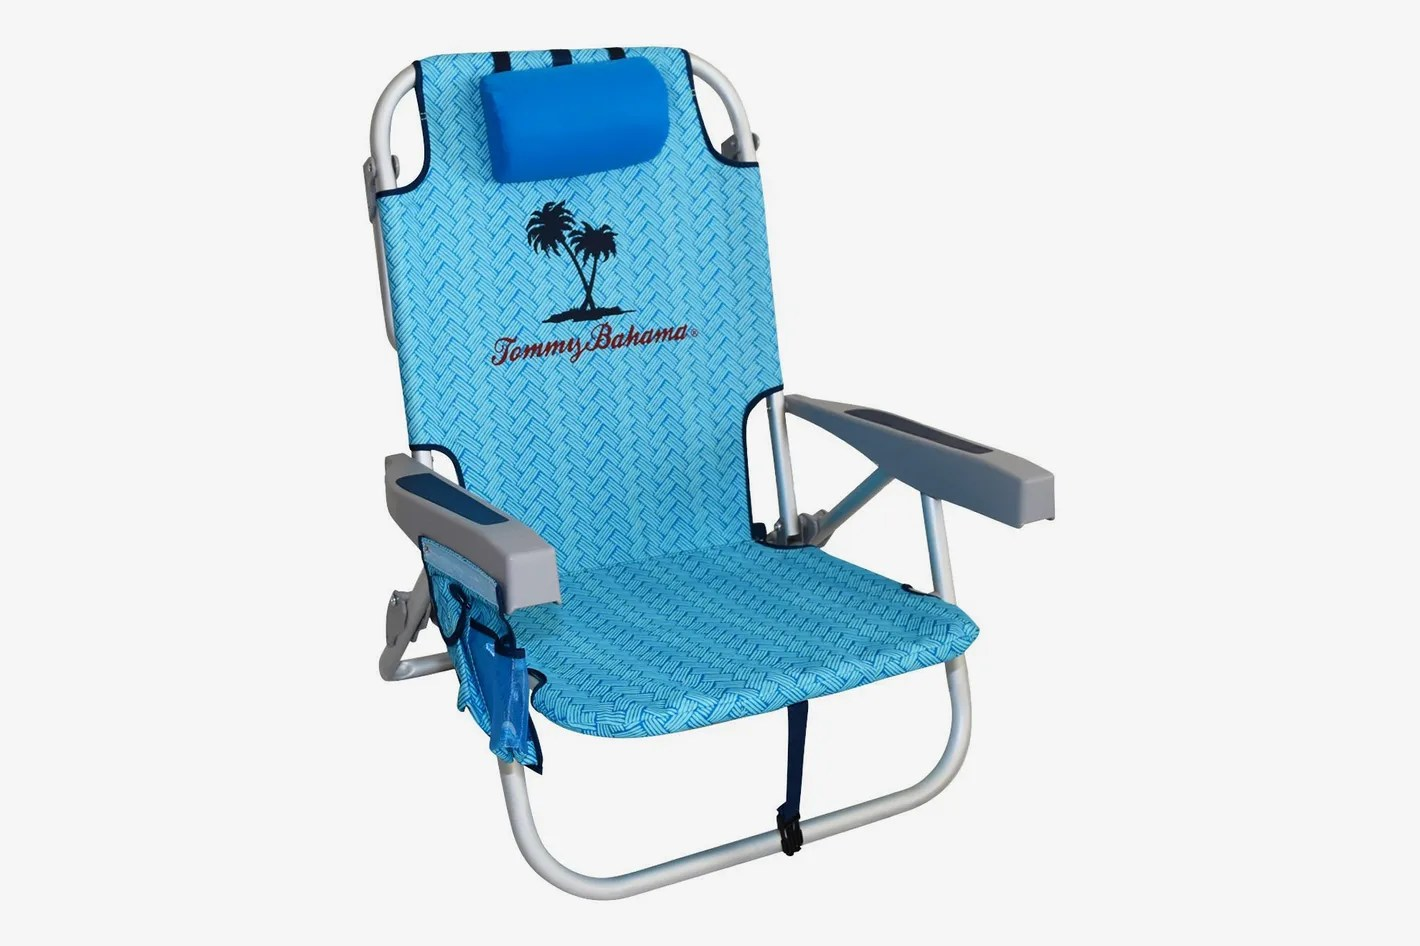 Portable Beach Chair 21 Best Beach Chairs 2019